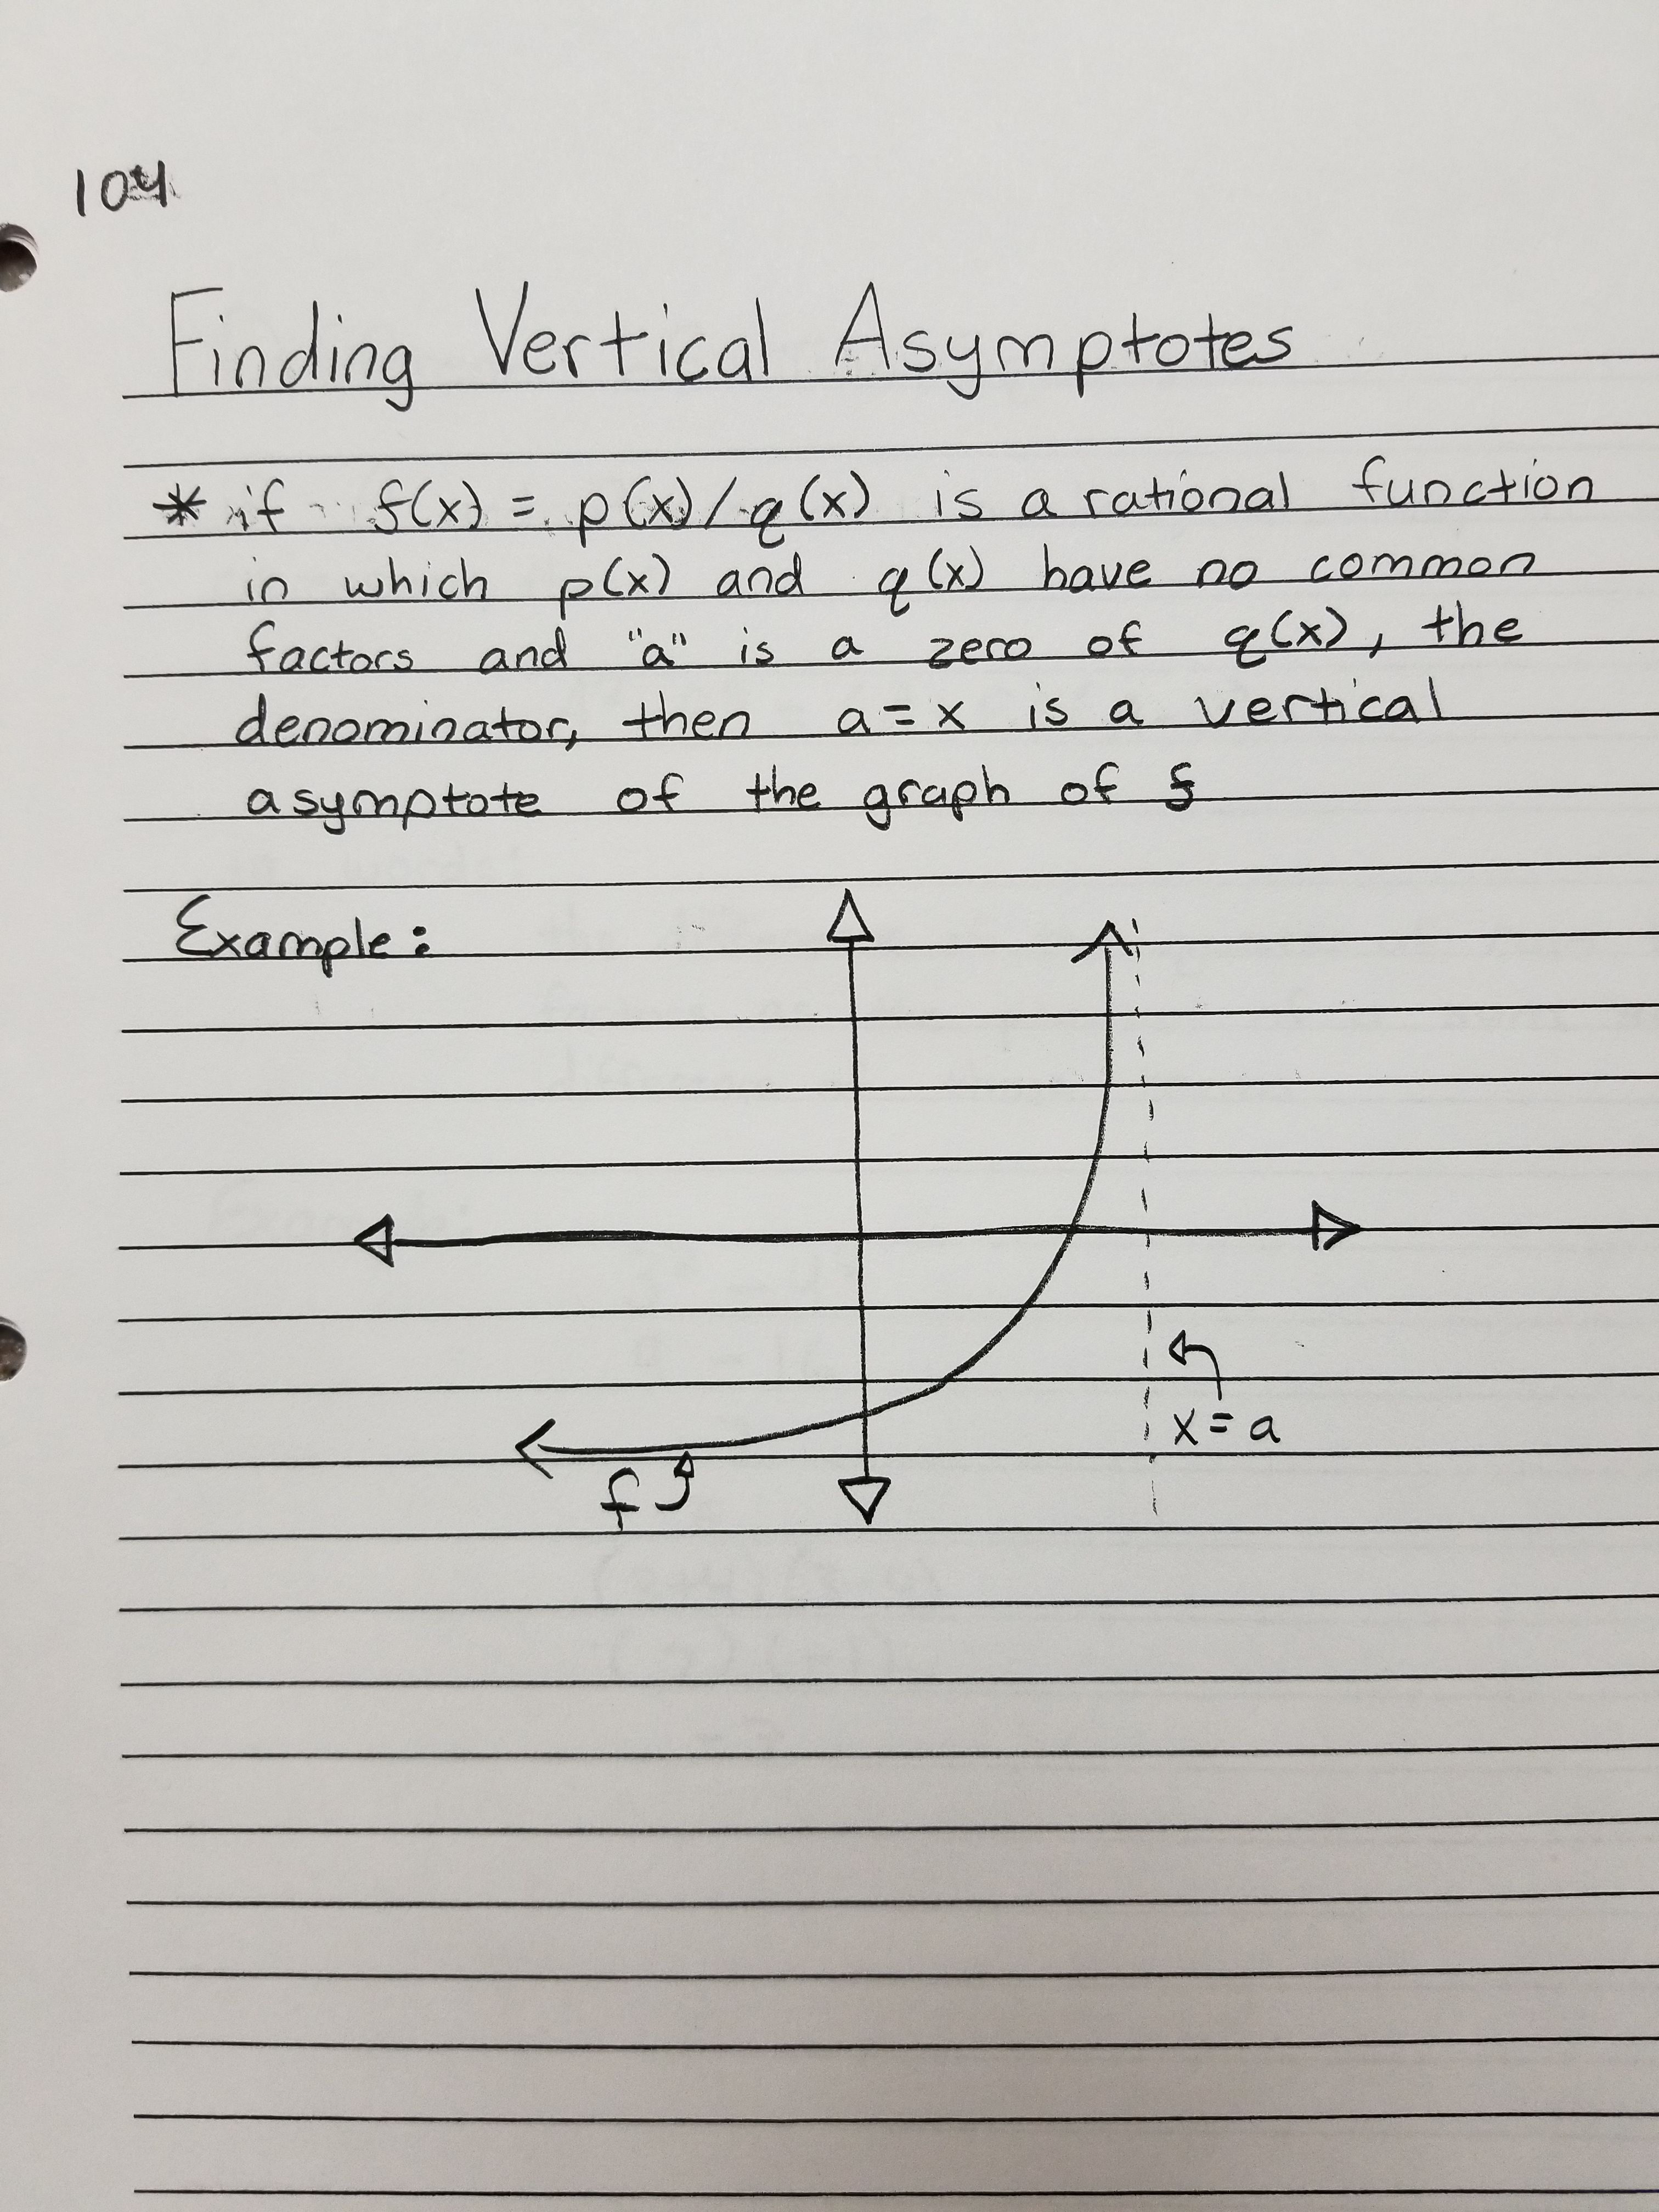 Finding Verticle Asymptotes